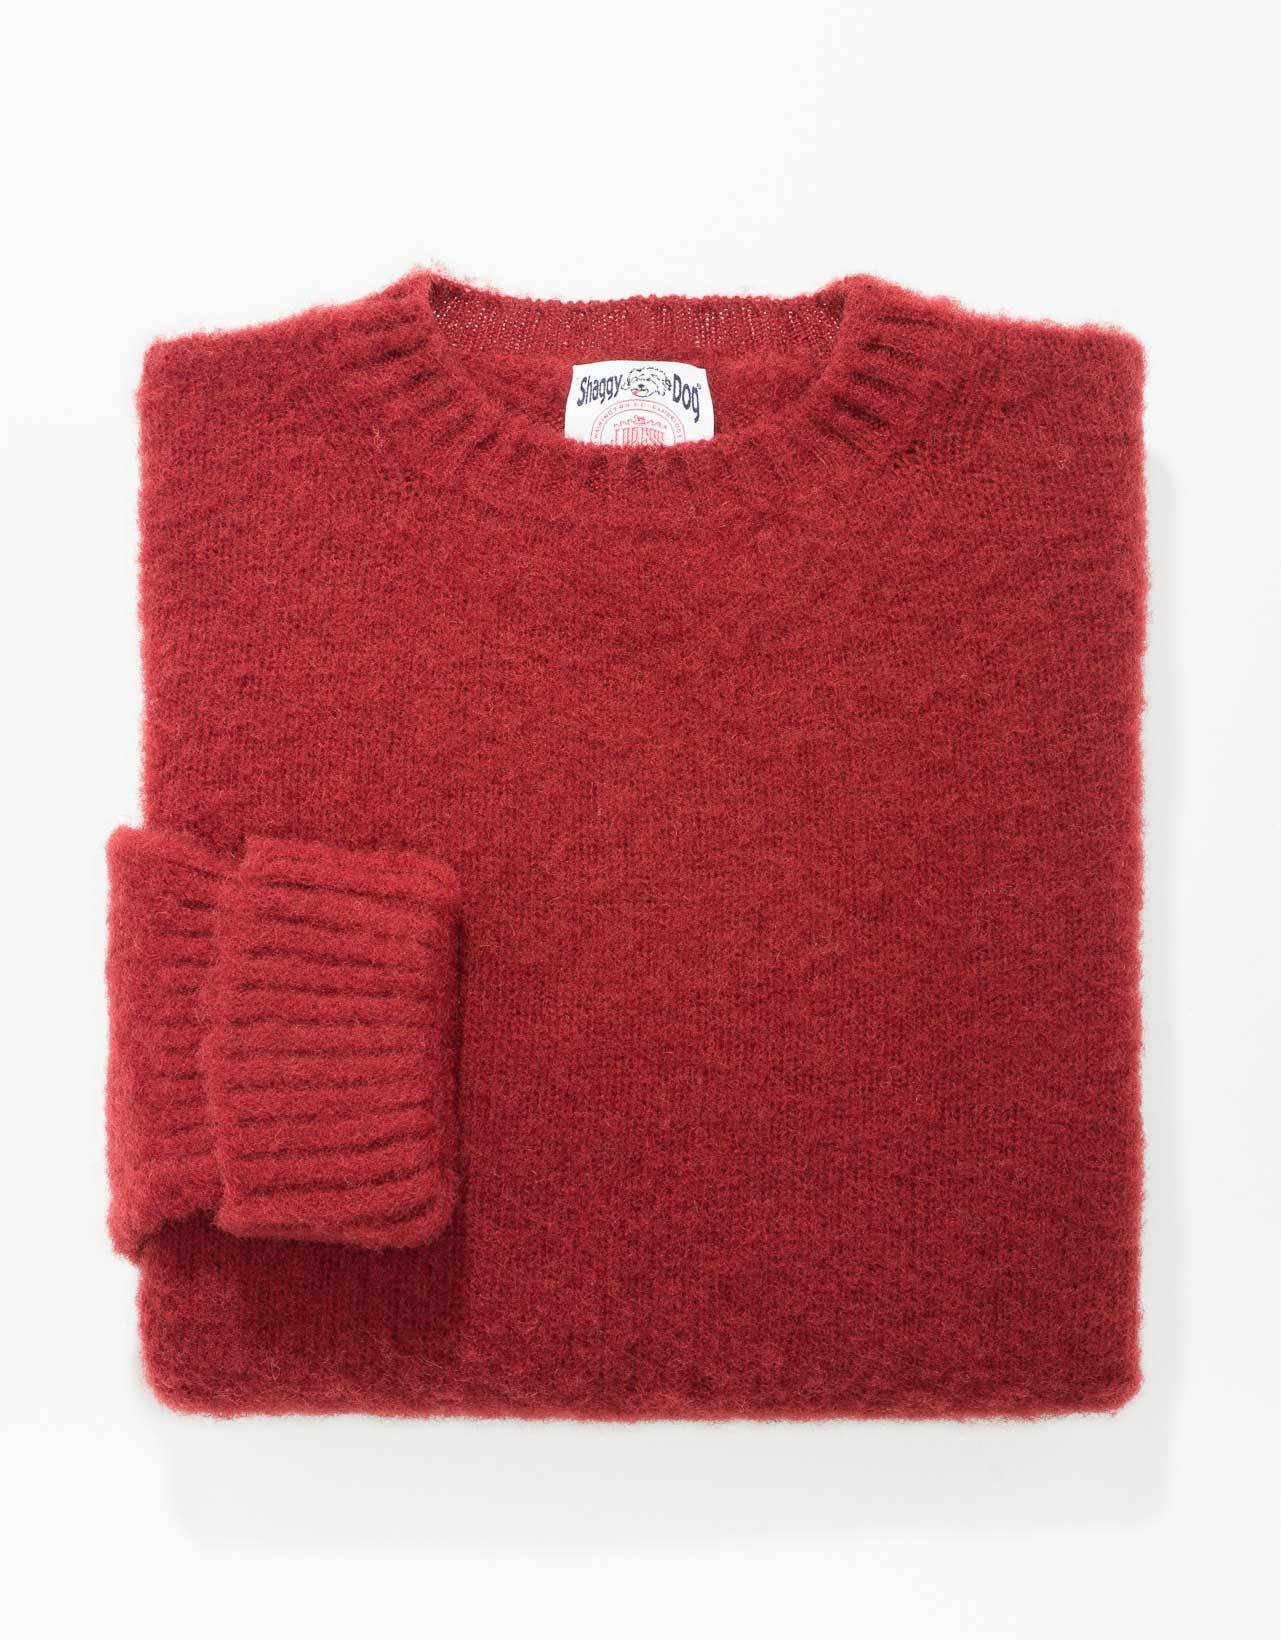 CLASSIC FIT SHAGGY DOG SWEATER - RED